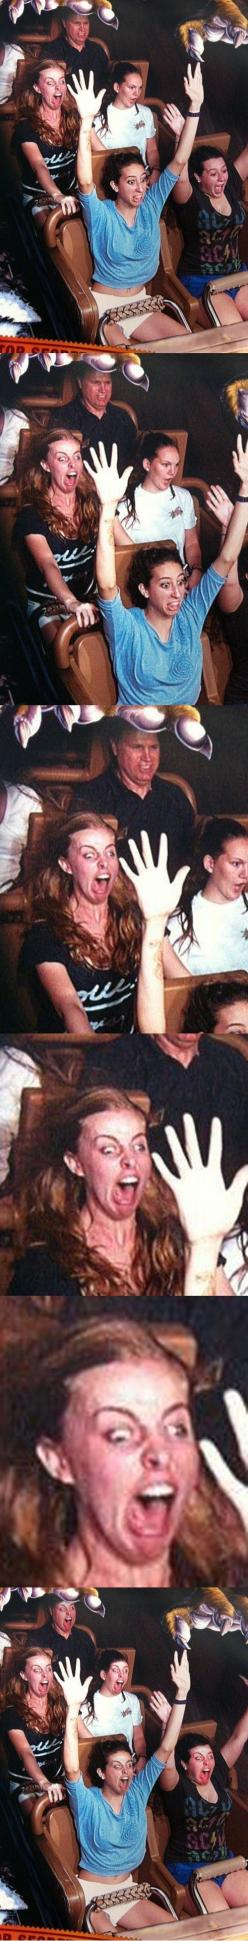 The longer you look....I'm dying.: Rollercoaster, Giggle, Laughing So Hard, Cant, Face Swaps, Roller Coasters, Funny Stuff, Faceswap, So Funny